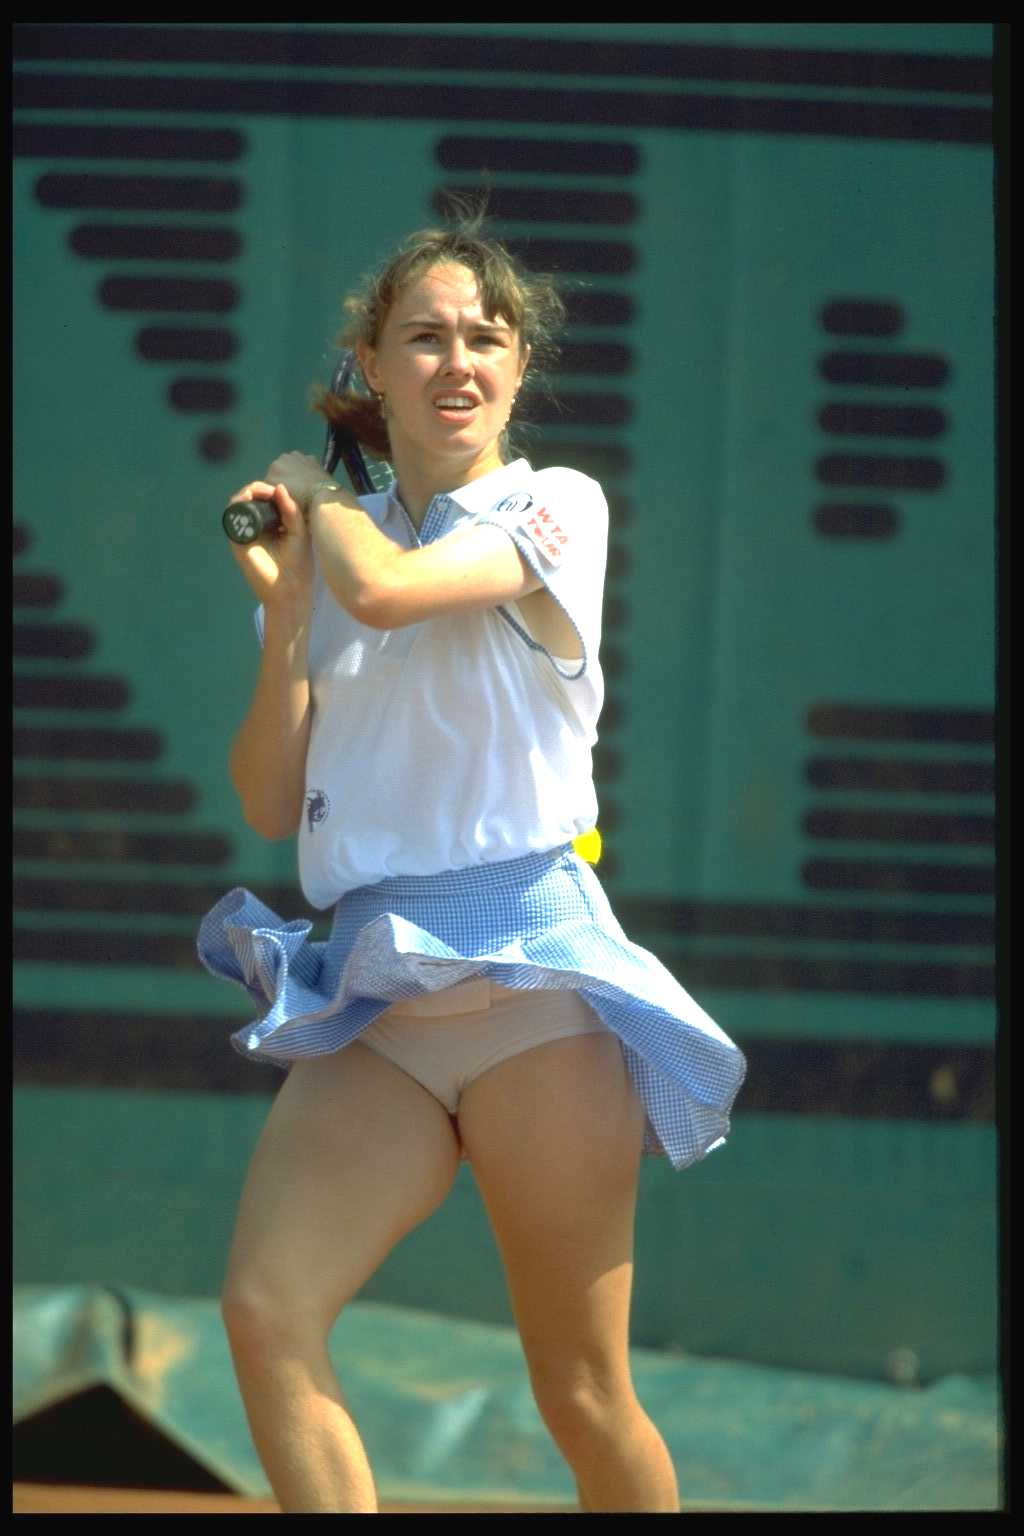 Martina hingis naked pictures are not